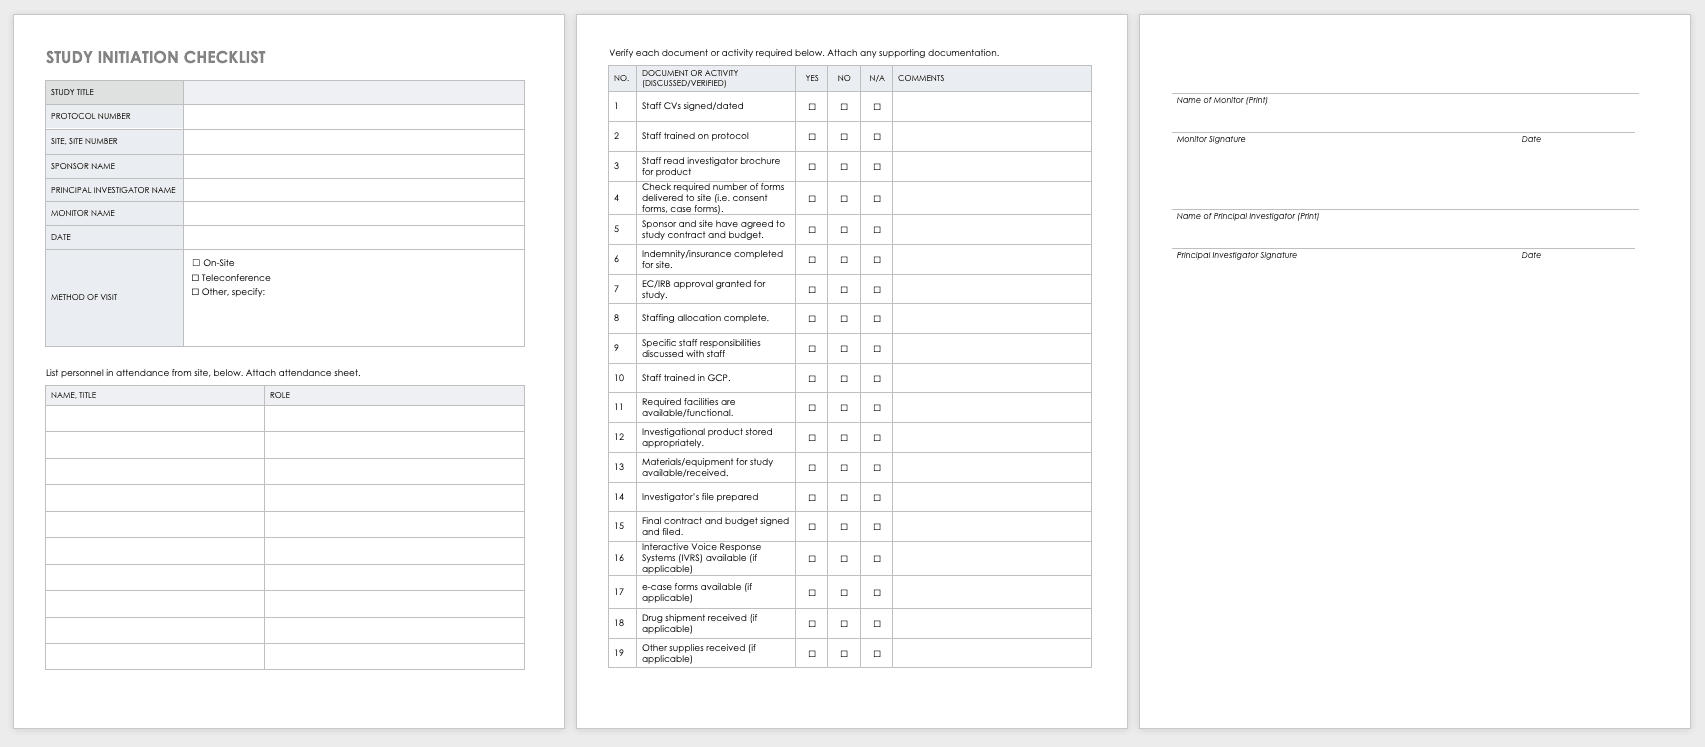 Study Initiation Checklist